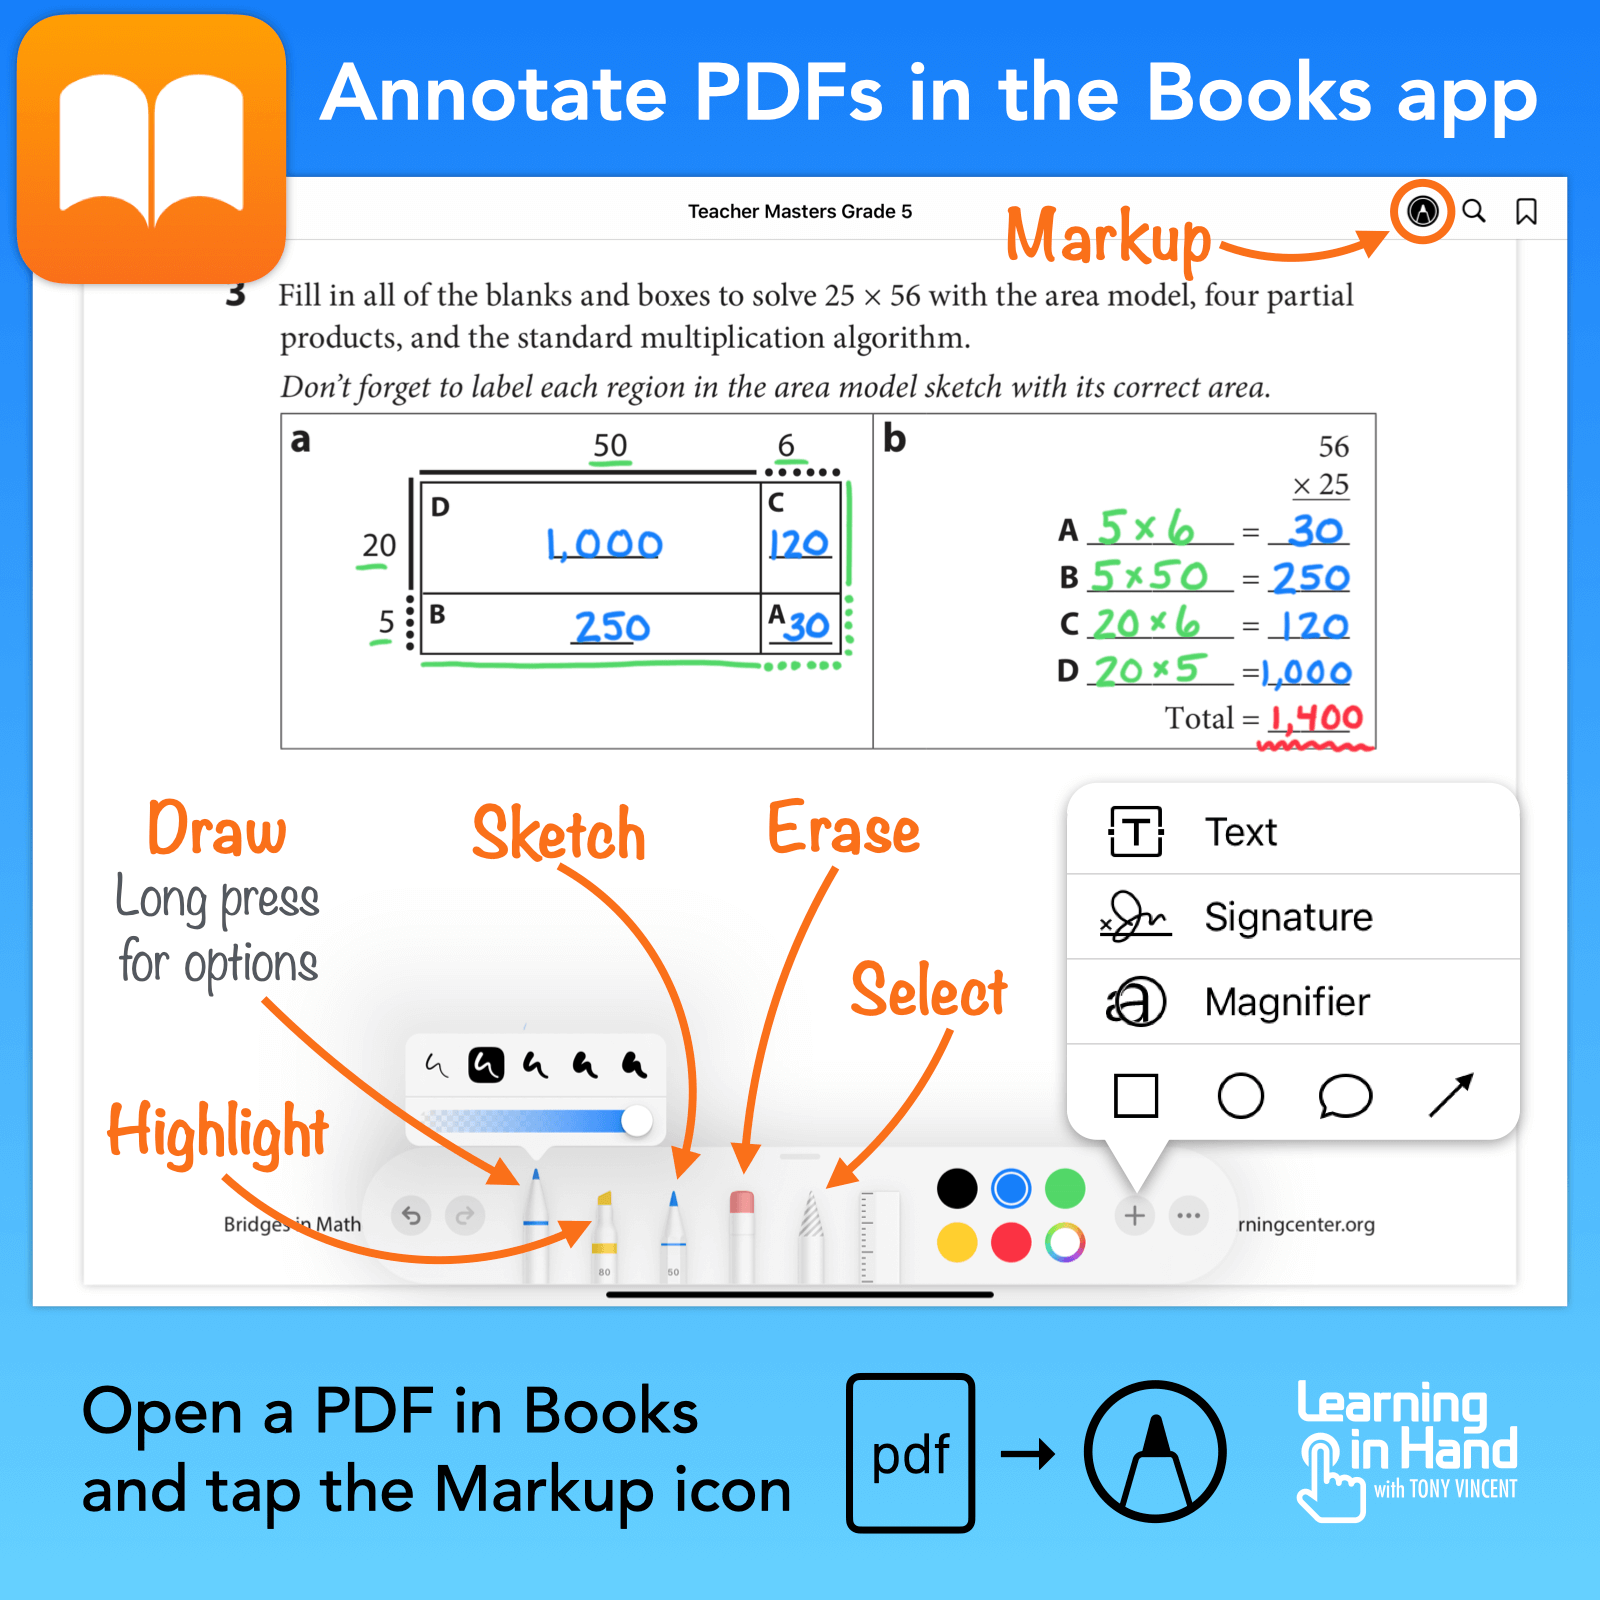 🔖 You can store PDFs in the Books app on your iPad and annotate them.  📚 Load up PDFs of teacher guides and student books so that you can call them up and write on them while mirroring or sharing your screen. #distancelearning https://t.co/udH8rQtEGk